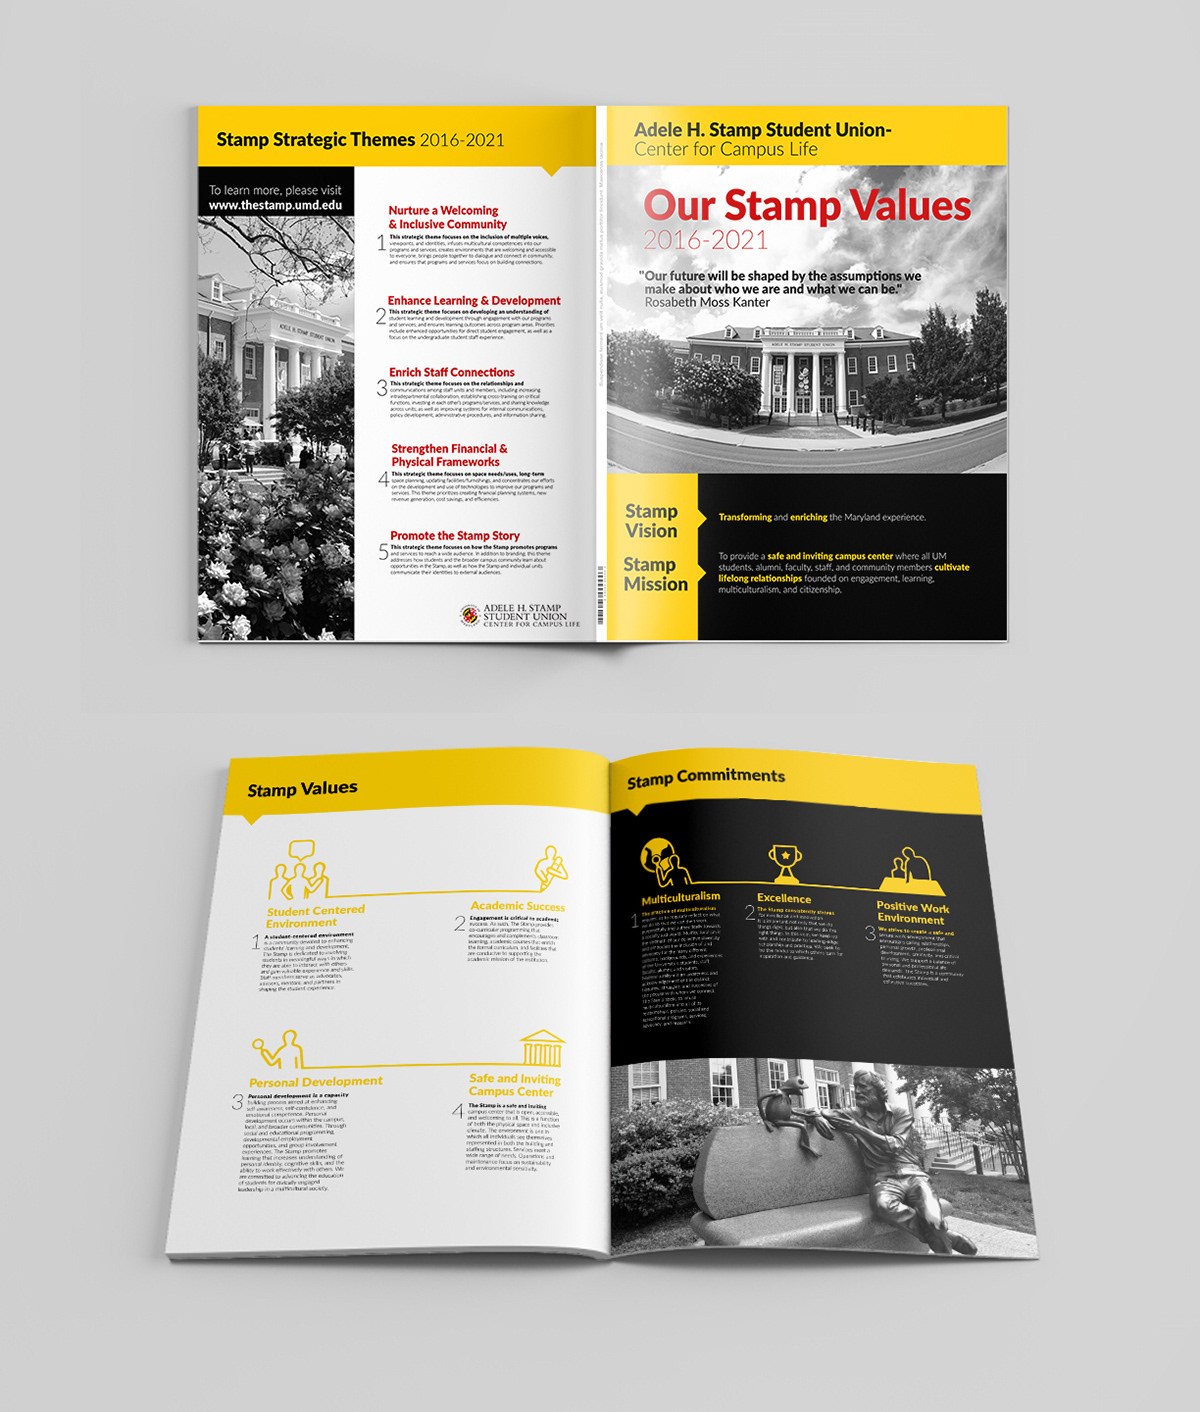 Booklet Of Values For Adele H Stamp Student Union Building At University Maryland